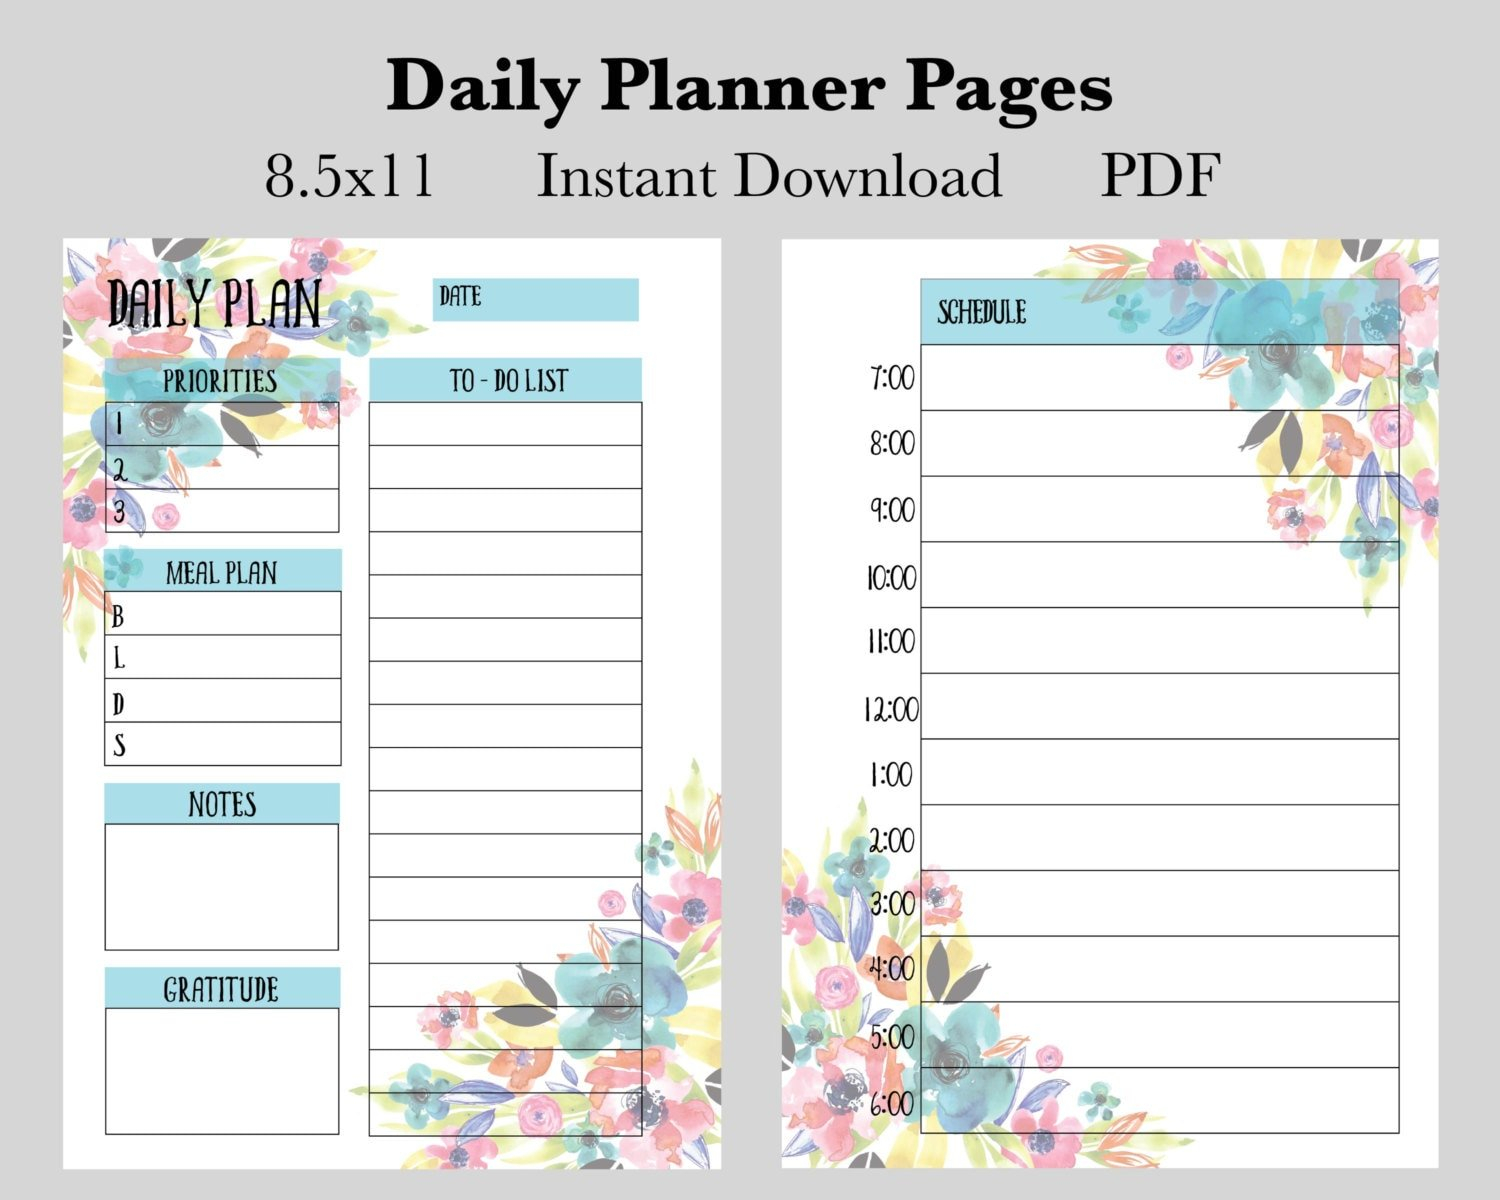 Daily Planner Pages Instant Download Printable Planner Pages inside Printable Artist Planner Pages